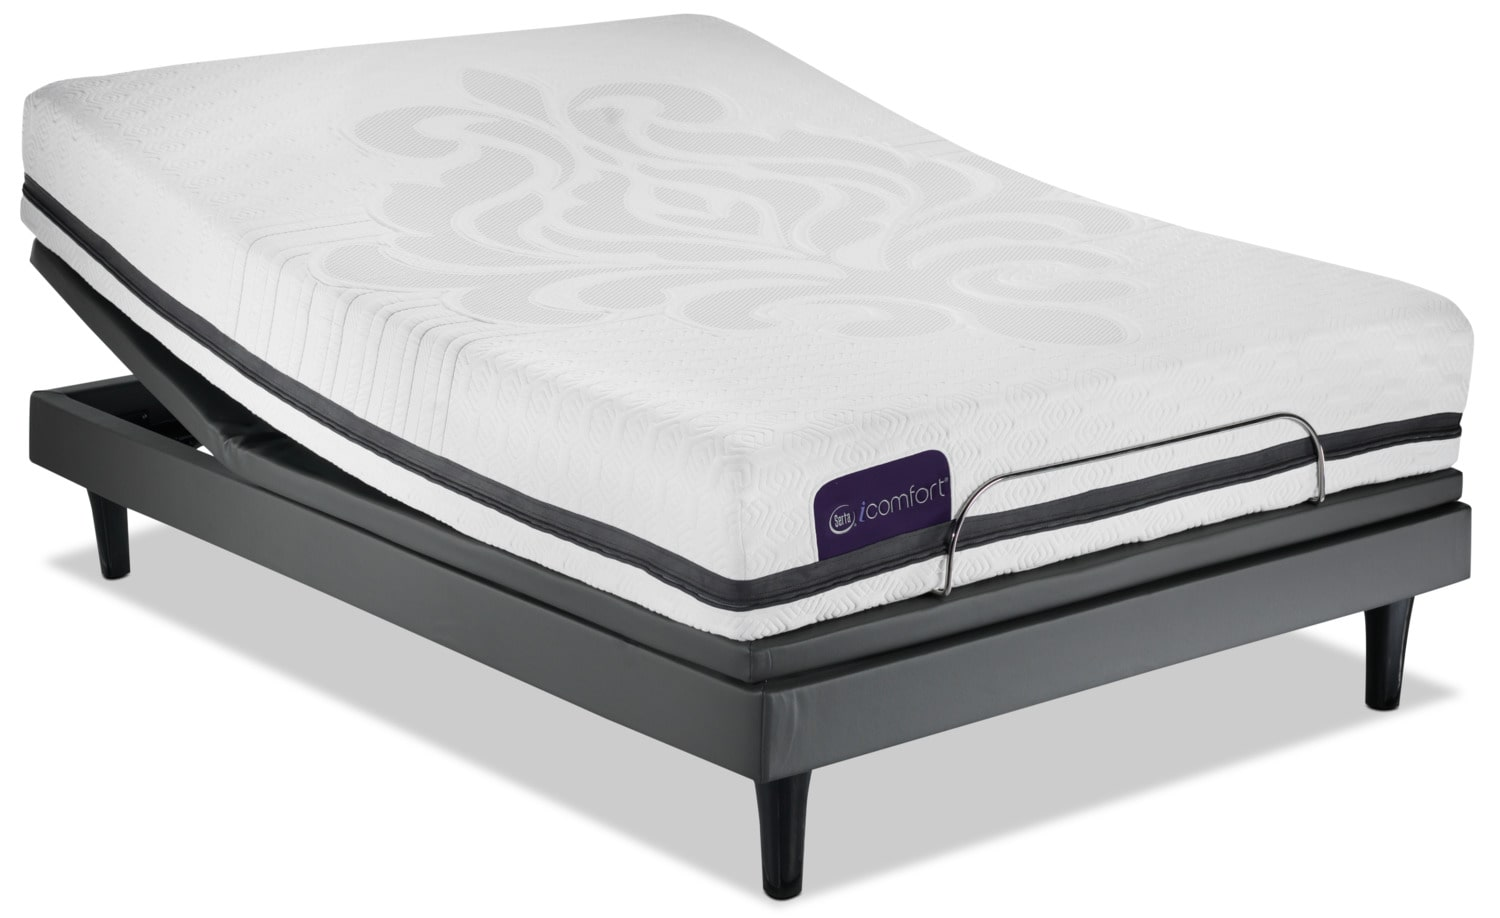 Serta iComfort Eco Contingence Firm Queen Mattress/Motion Perfect III Complete Adjustable Base